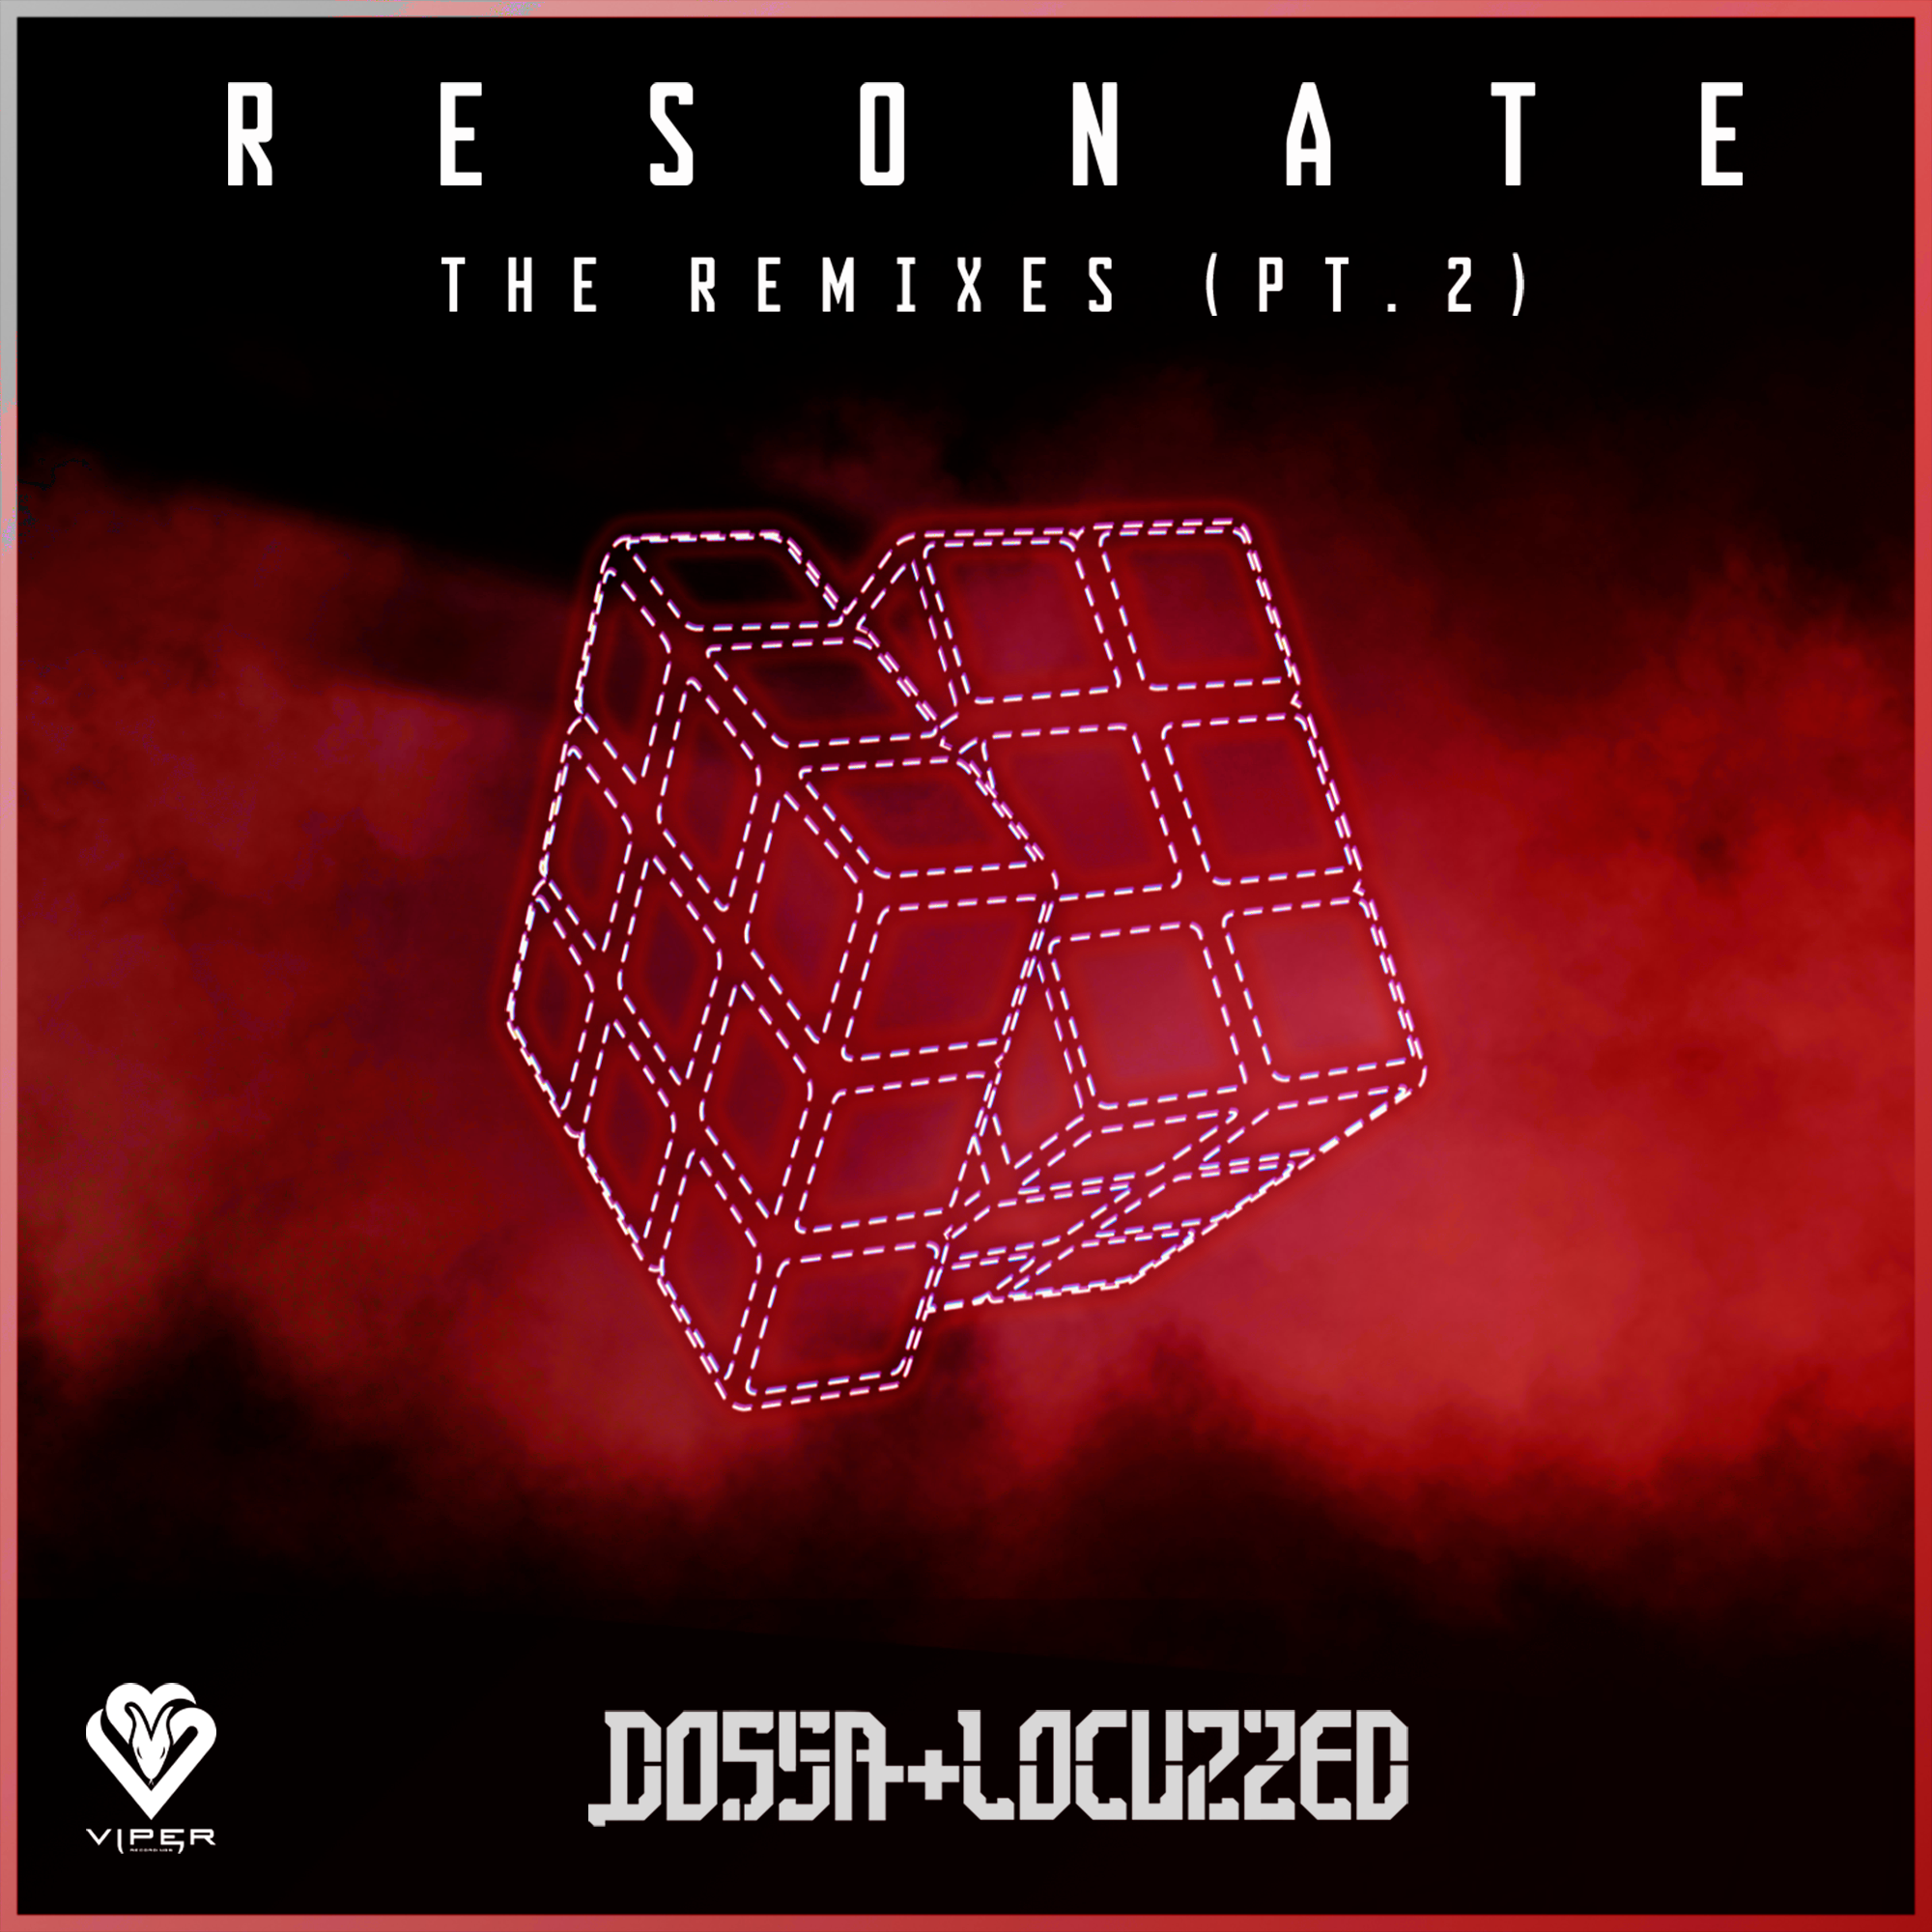 Dossa & Locuzzed - Resonate Remixes Pt. 2 [VPR212]